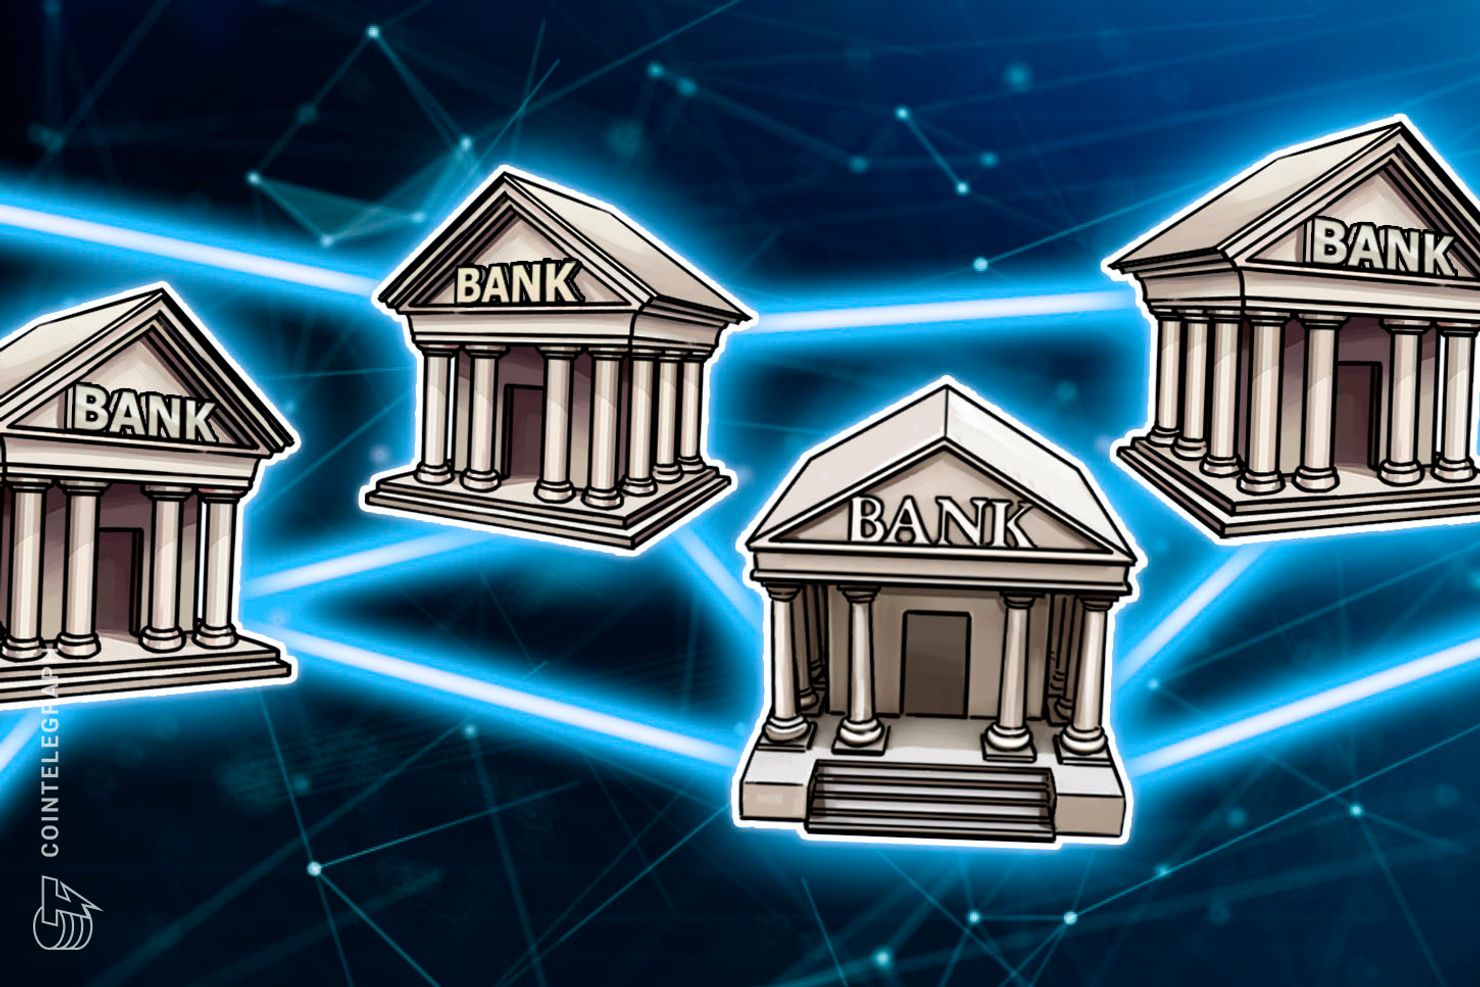 FX Settlement Provider CLS Begins Final Testing for Blockchain Payment Banking Service